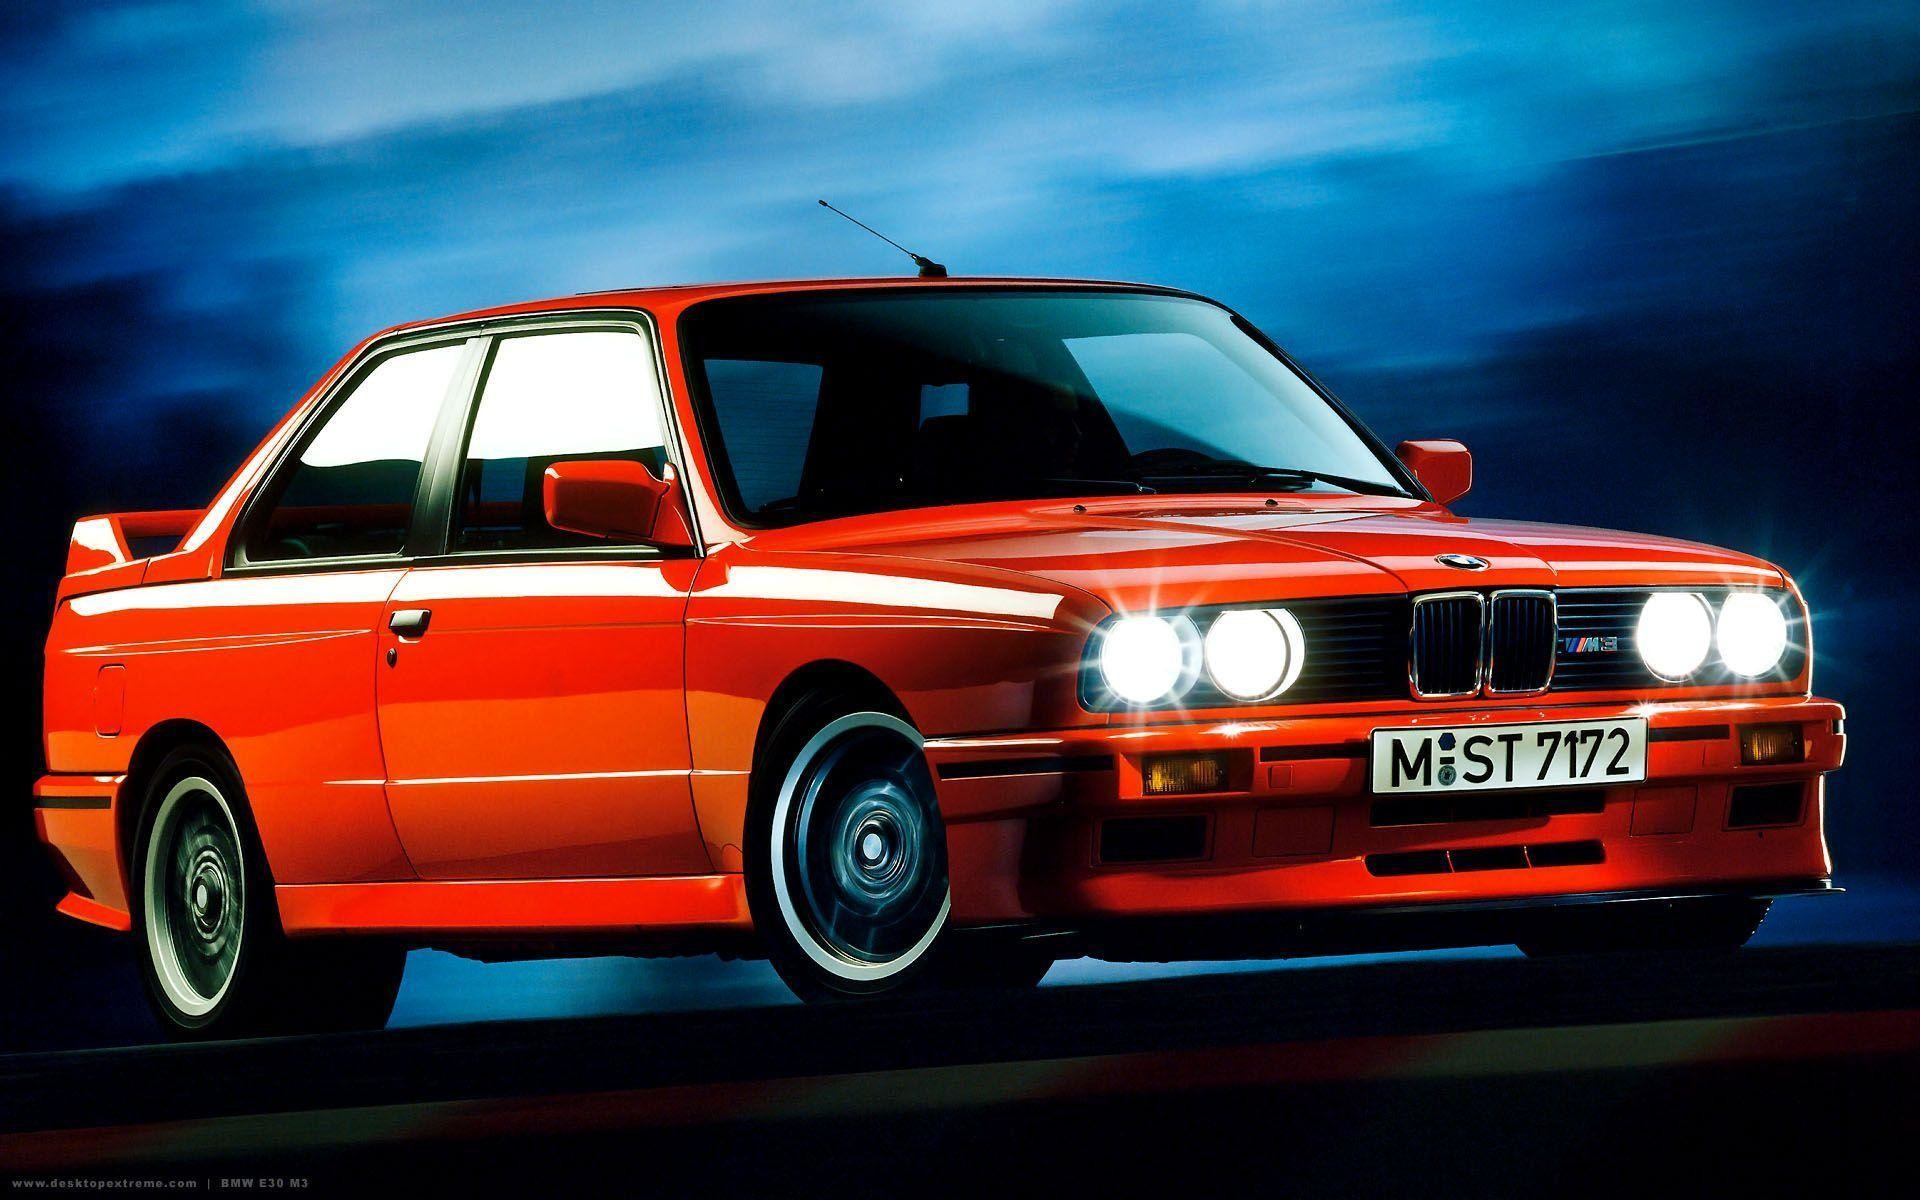 1920x1200 Bmw E30 Wallpapers - Full HD wallpaper search